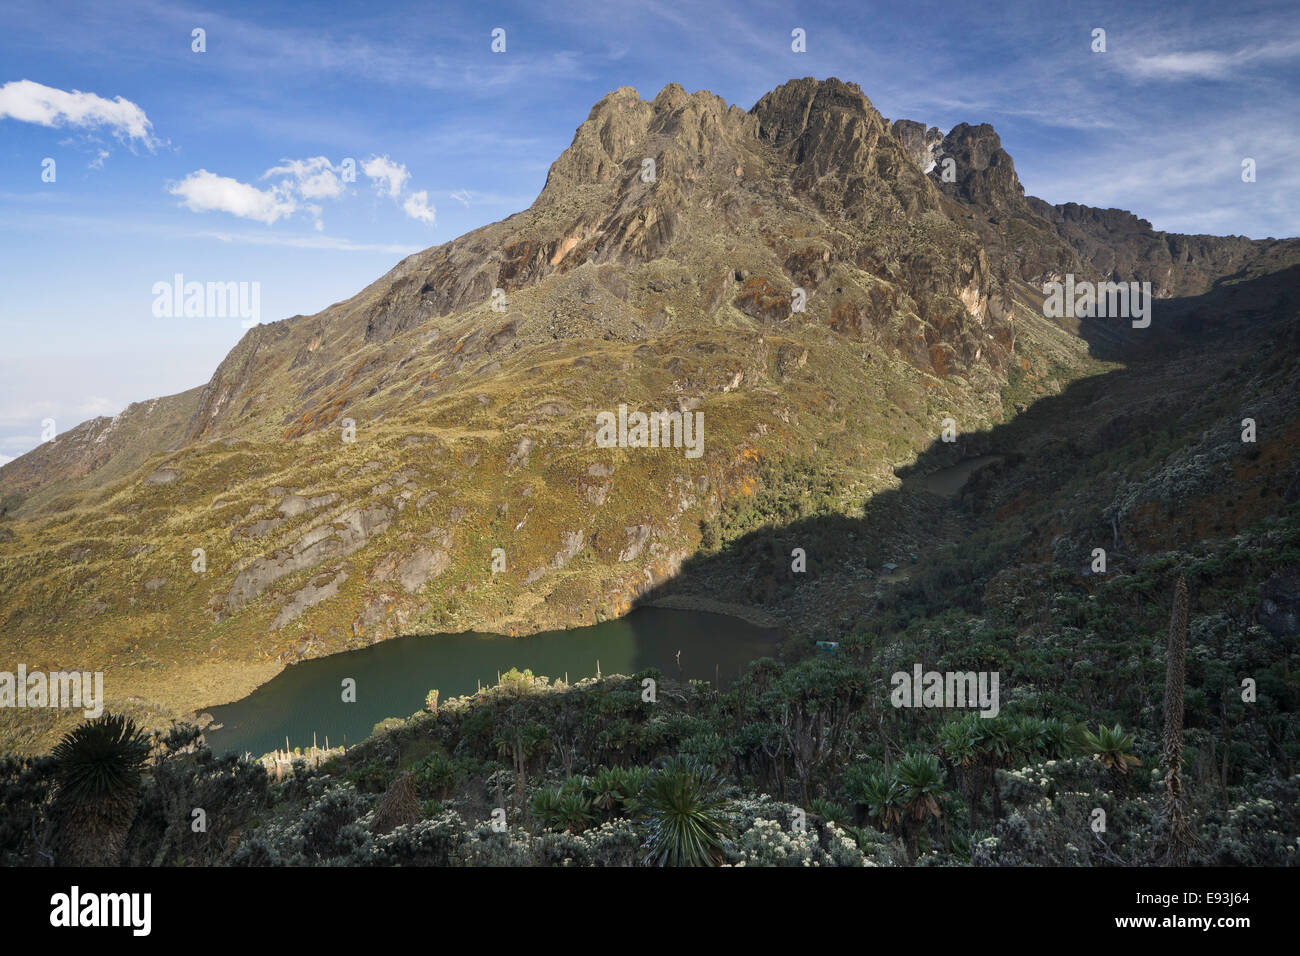 Kitandara lake and Kitandara hut, Rwenzori mountains, Uganda - Stock Image